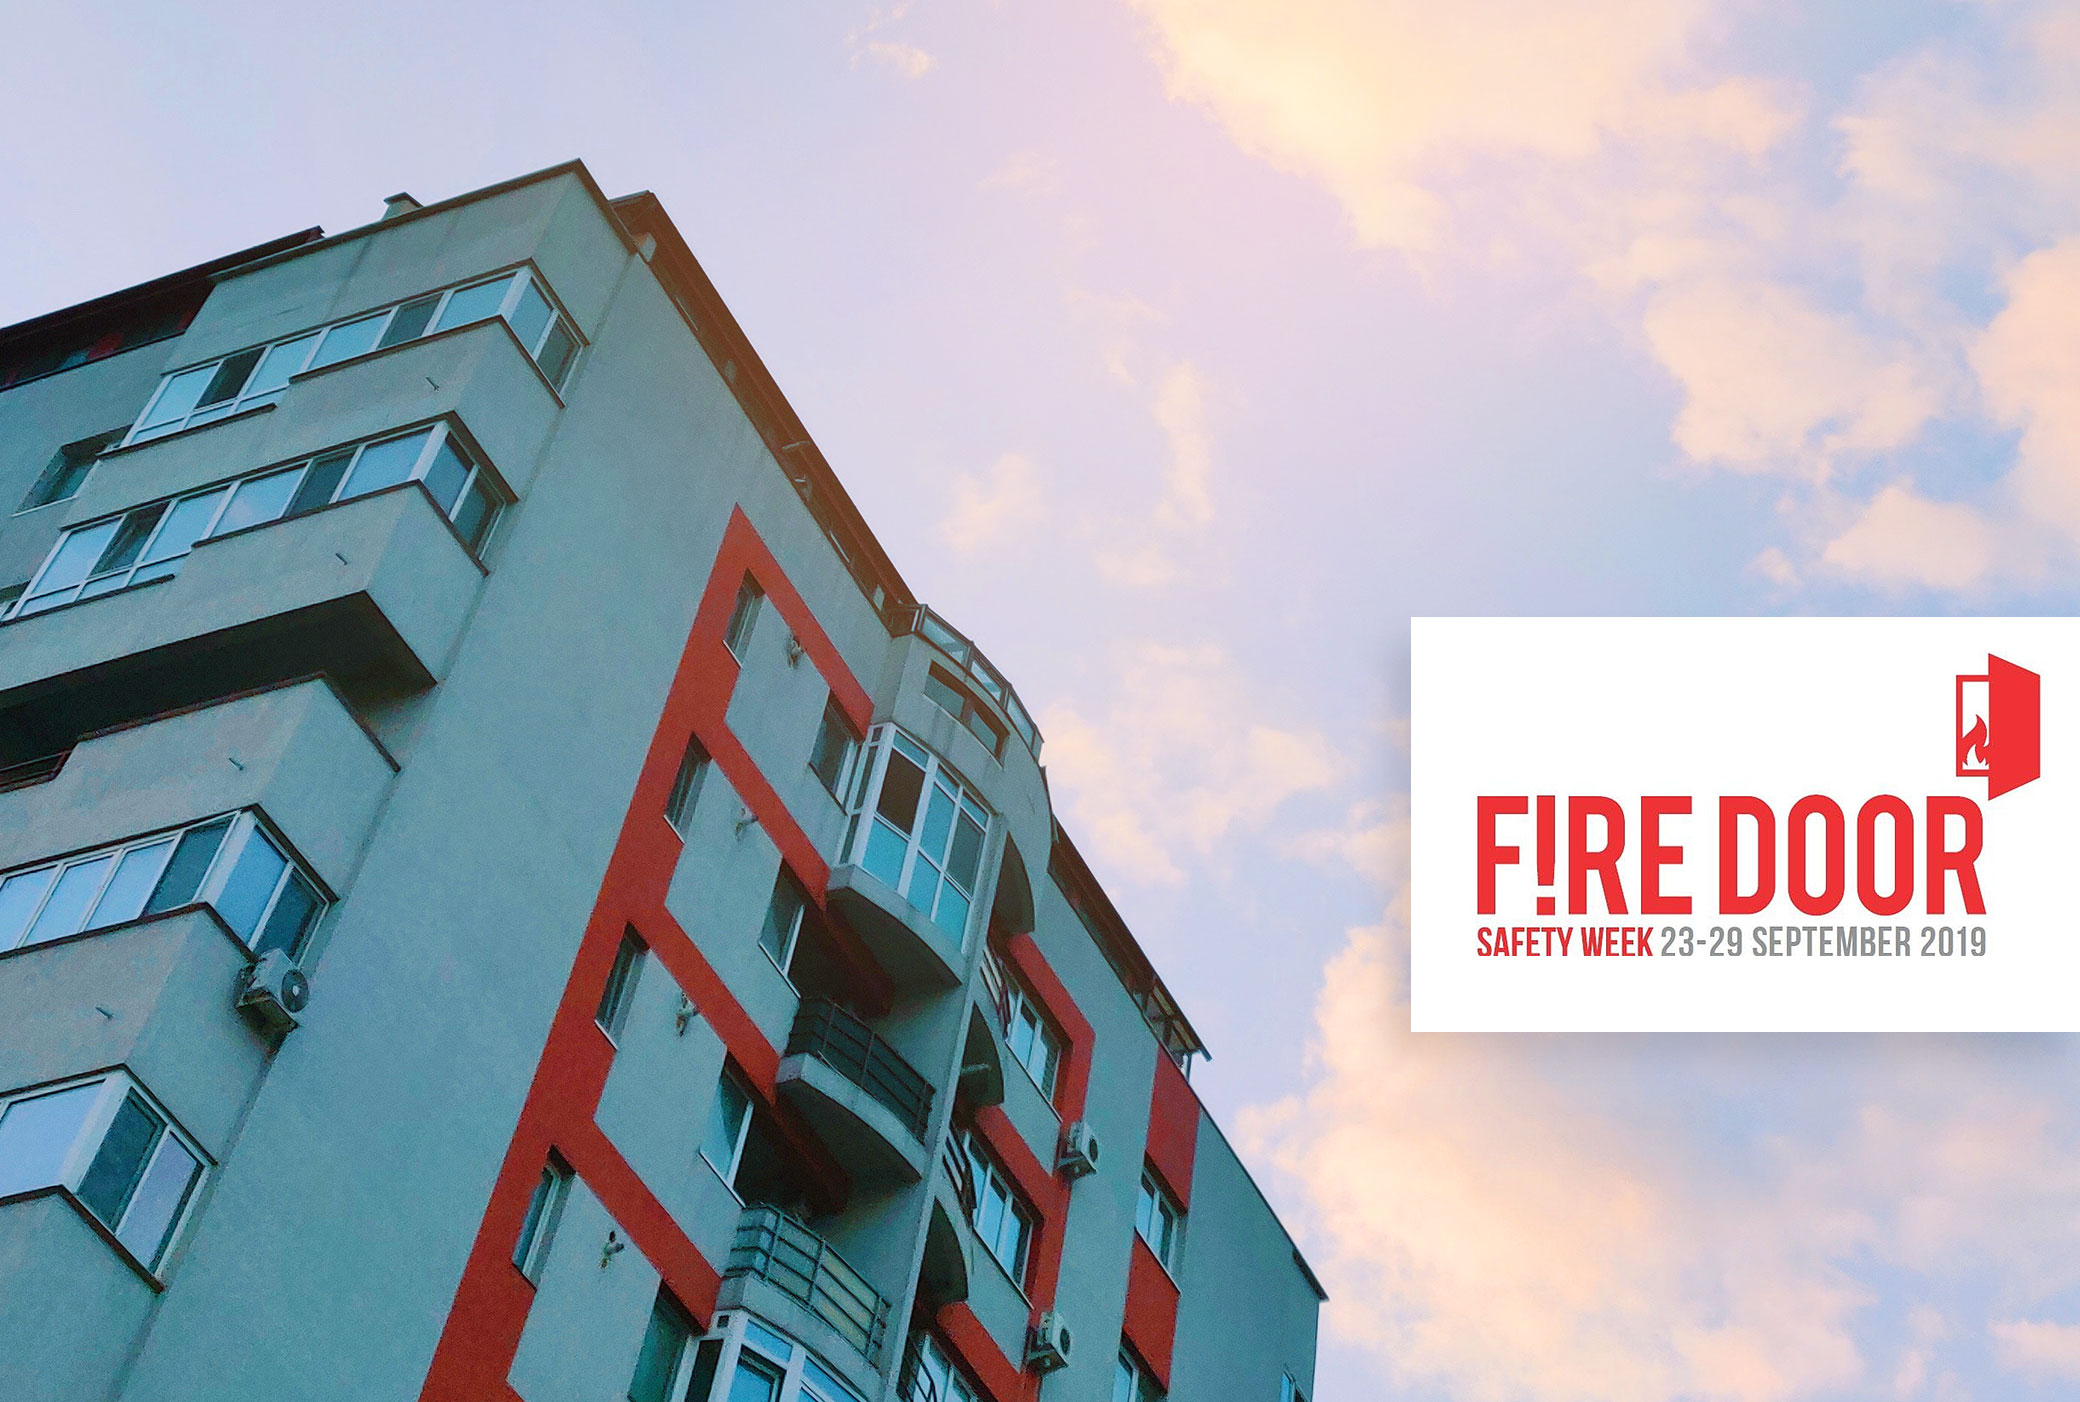 Fire Door Safety Week 2019 To Feature Interactive Mock Criminal Trial